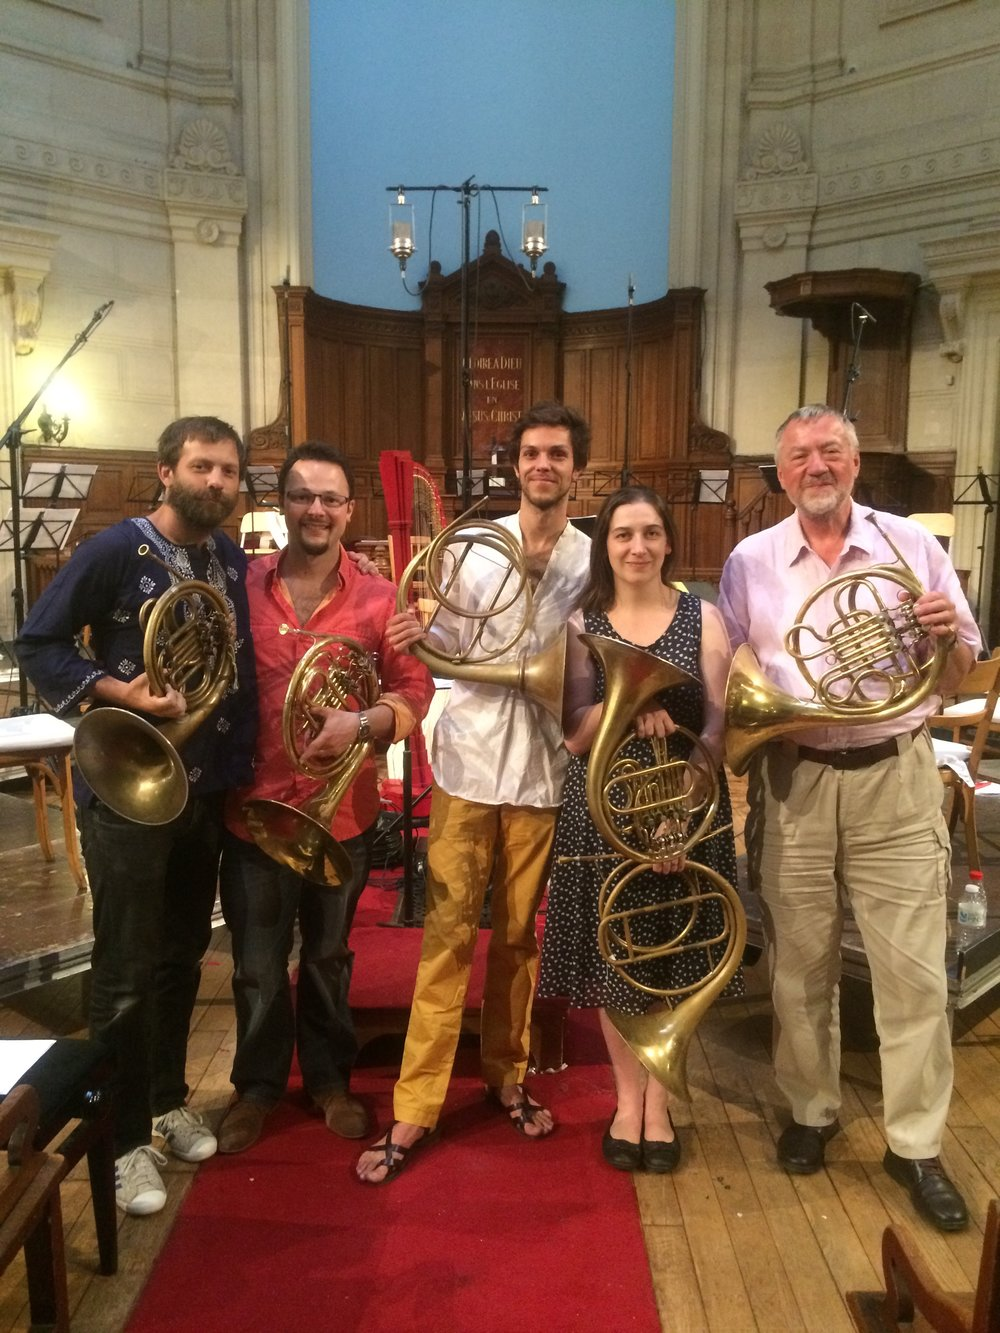 Left to right: Joseph Walters, Olivier Picon, Raphaël Pichon, Anneke Scott and Chris Larkin.